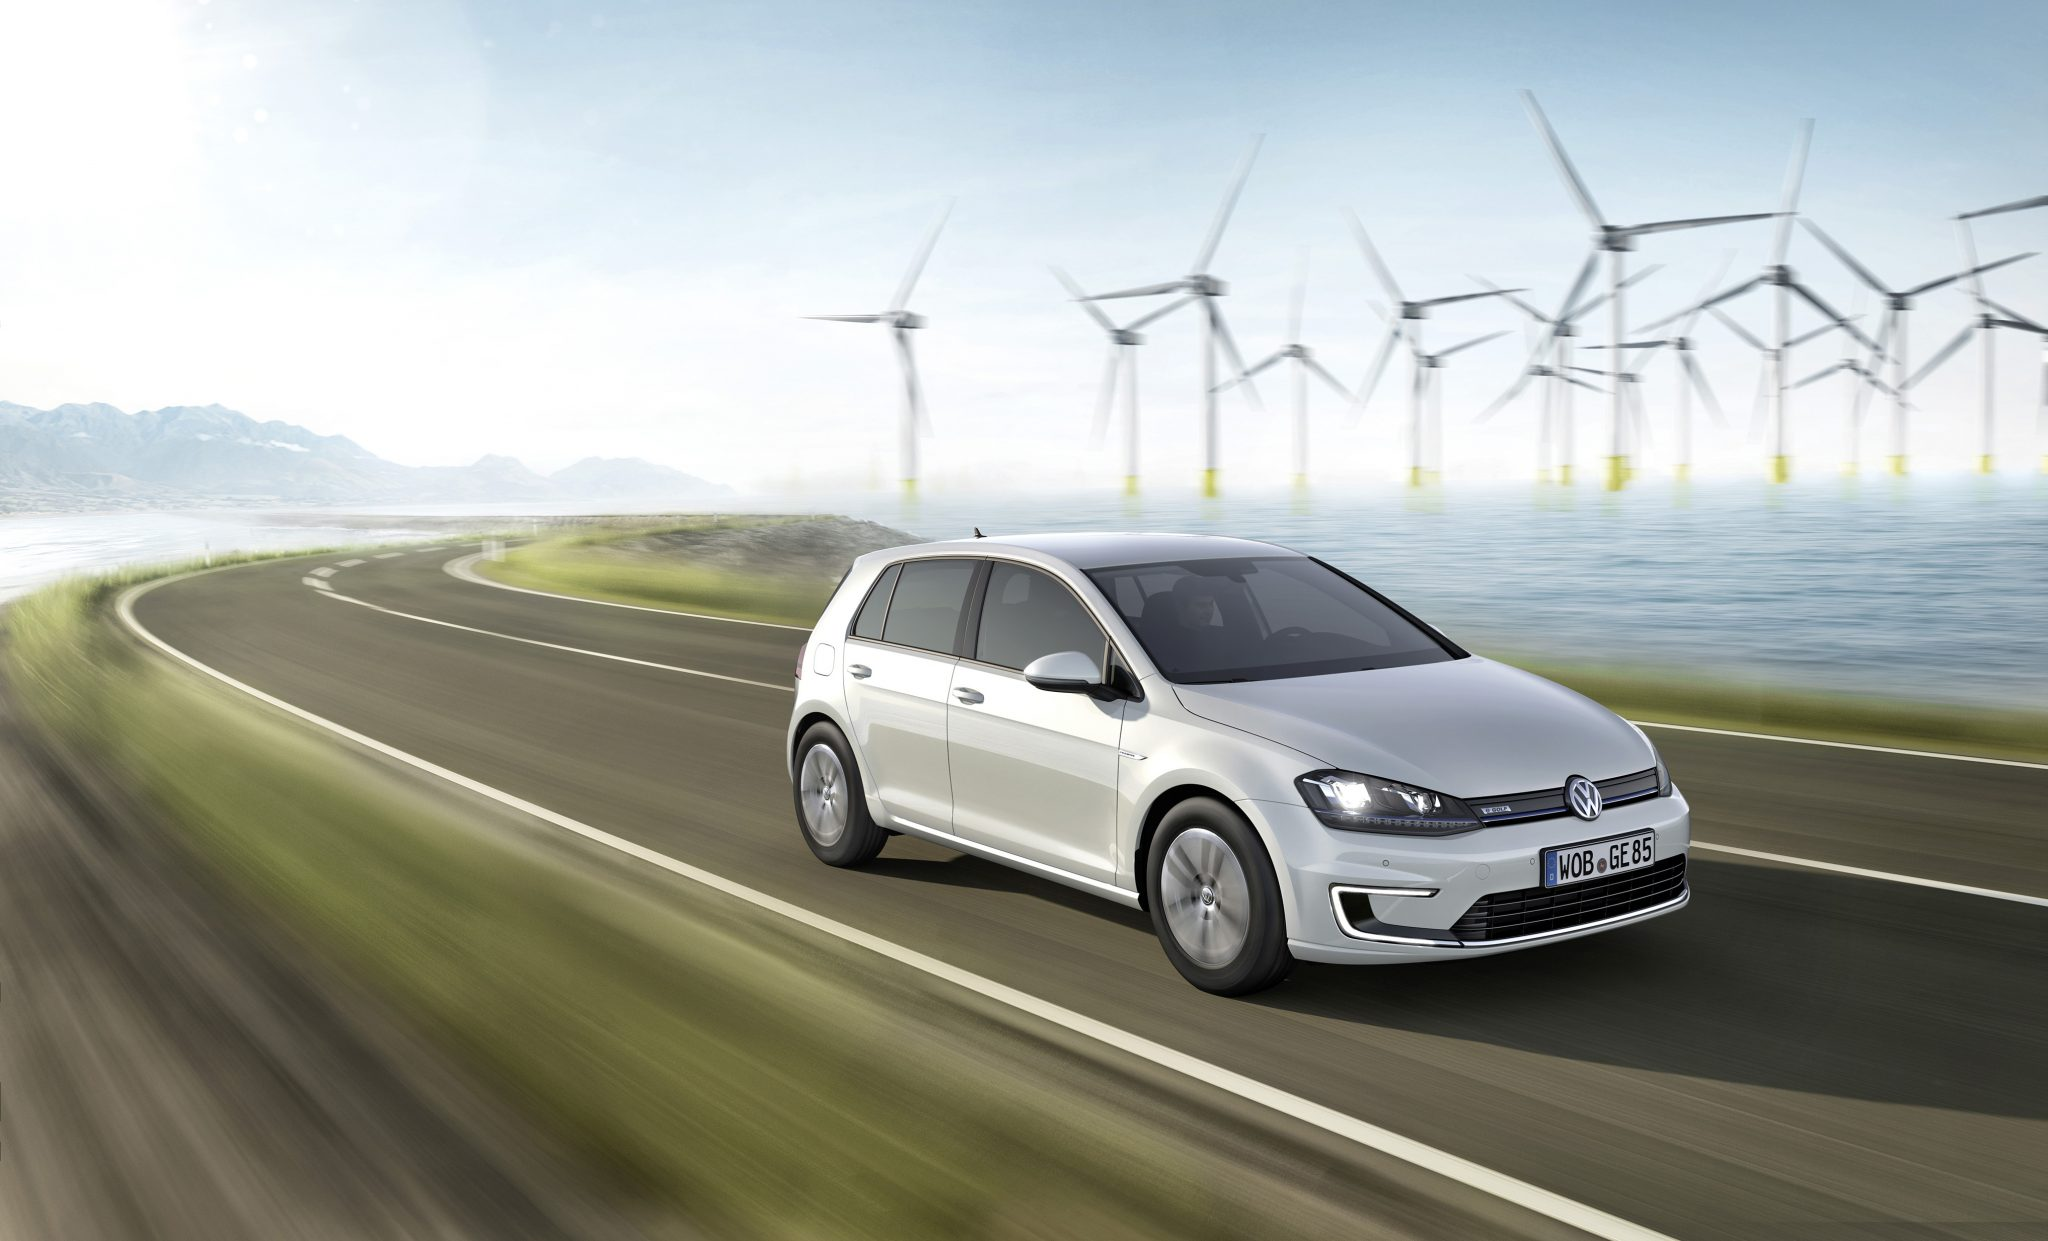 2015 volkswagen egolf marks vw s first electric entry in america the news wheel. Black Bedroom Furniture Sets. Home Design Ideas